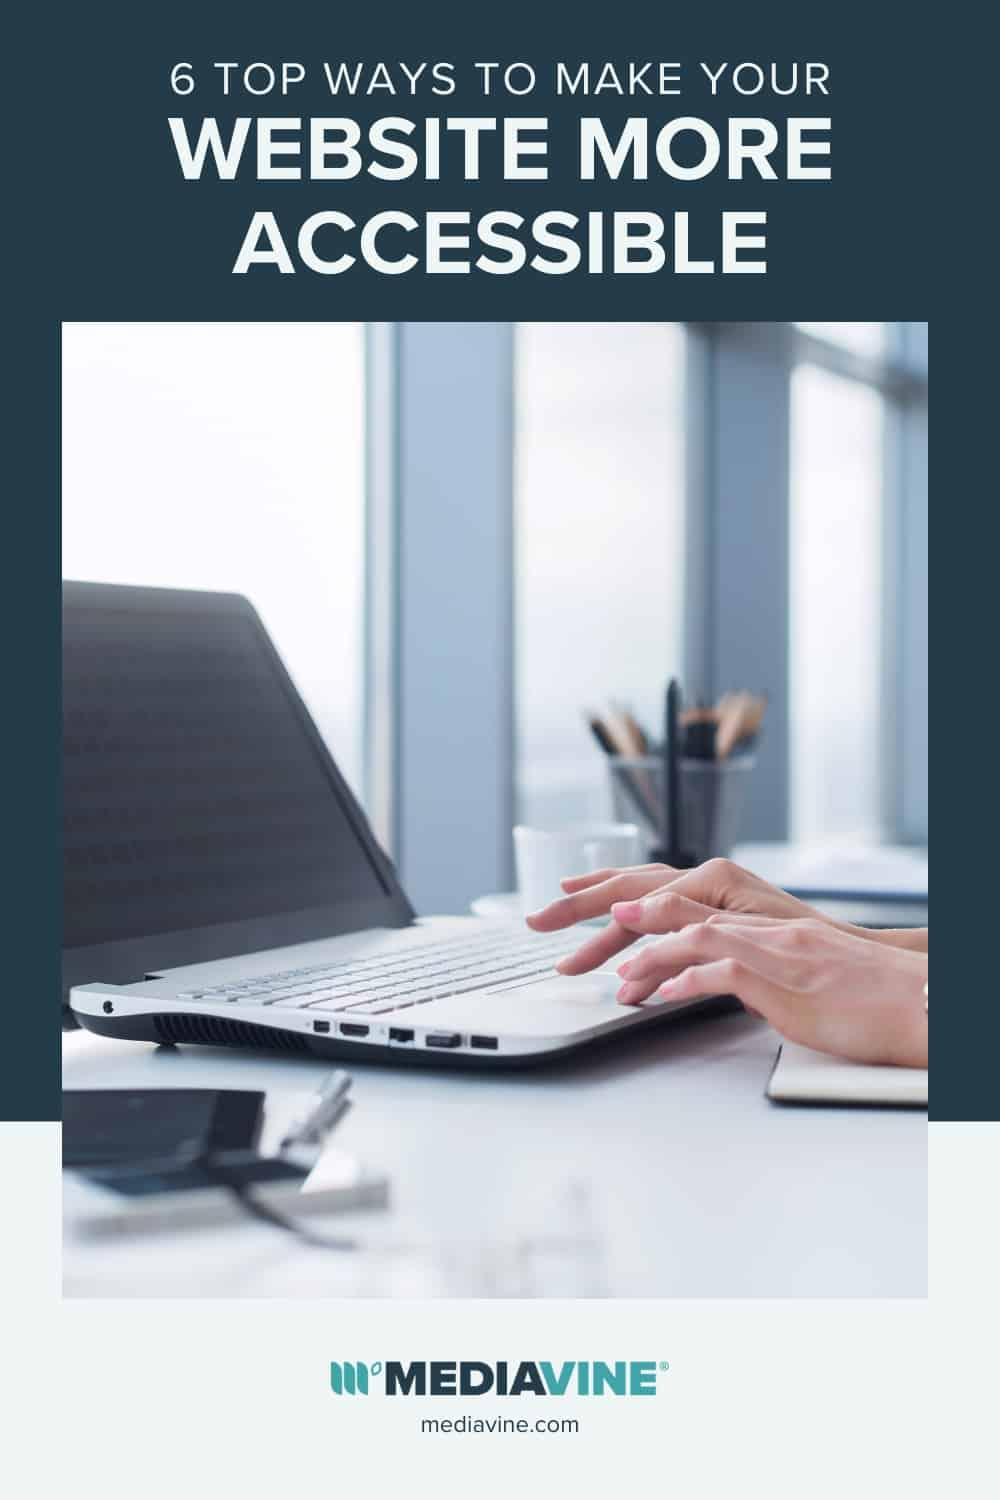 6 top ways to make your website more accessible - Mediavine Pinterest Image